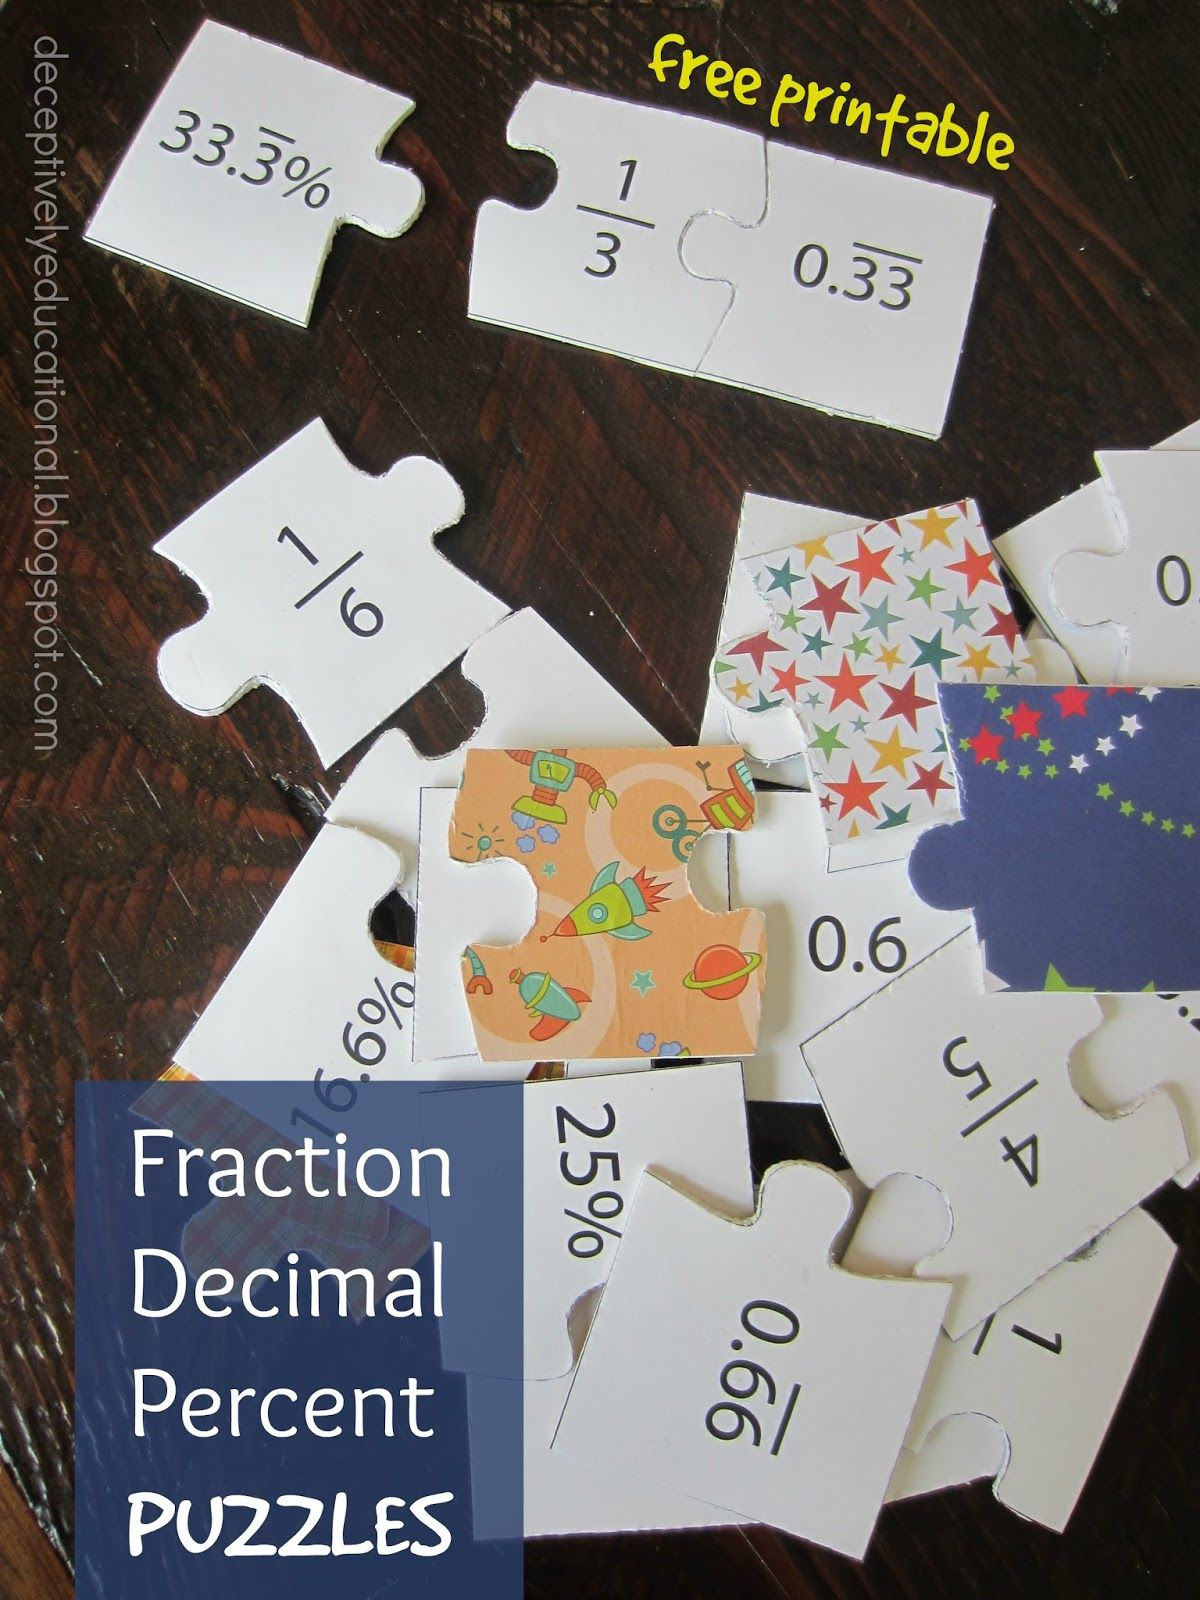 Relentlessly Fun Deceptively Educational Fraction Decimal And Percent Puzzles Free